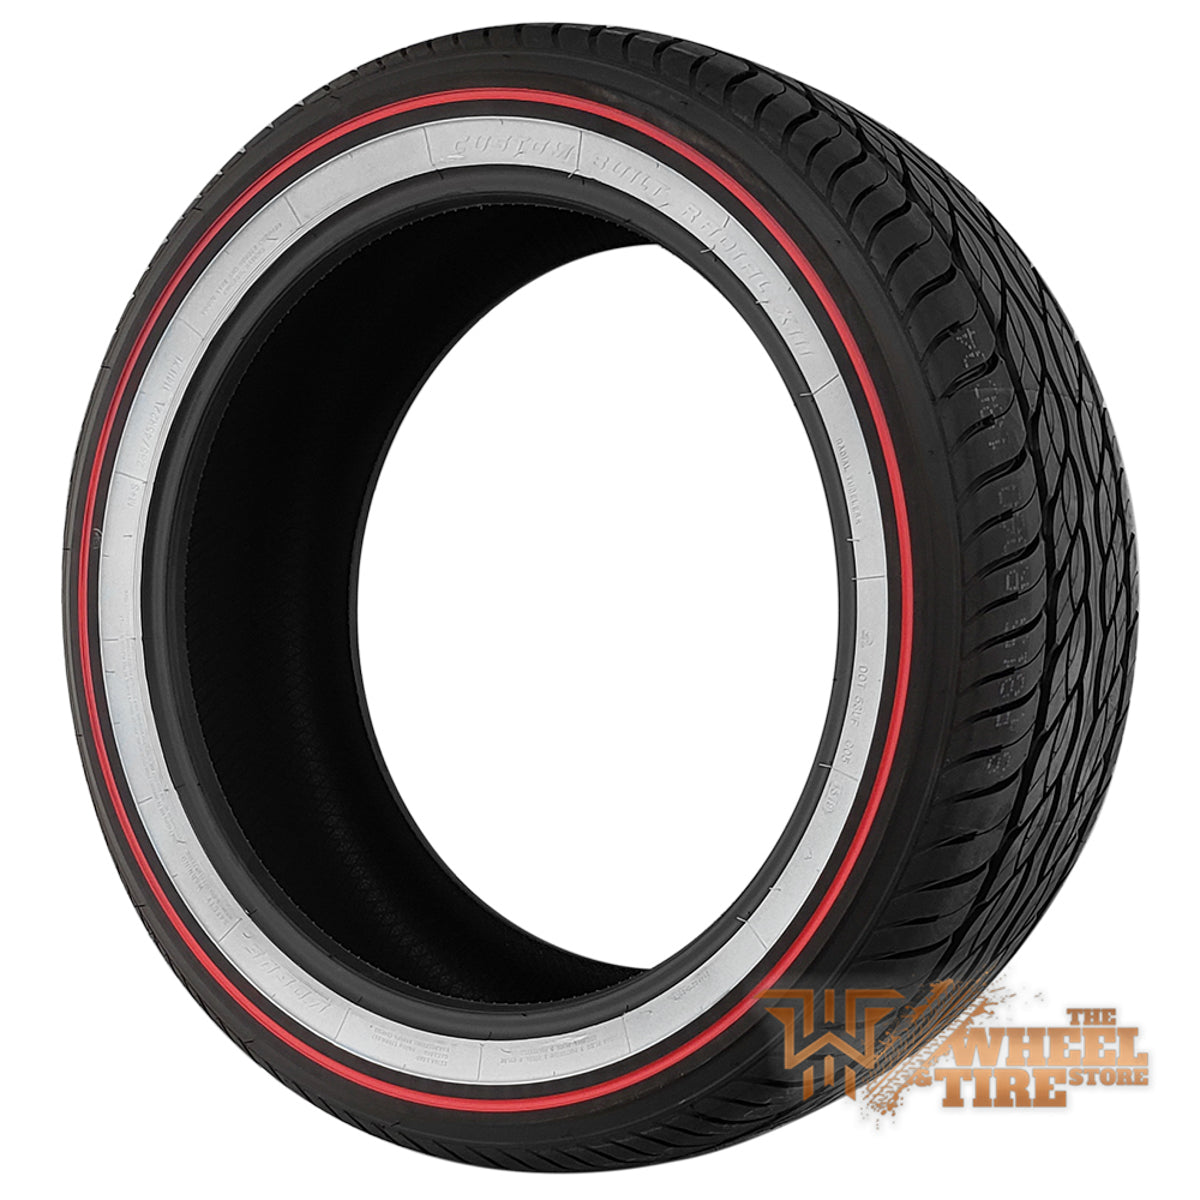 Vogue Classic White w/ RED Line - Limited 105th Anniversary Edition - 285/45R22 - Set of (4)